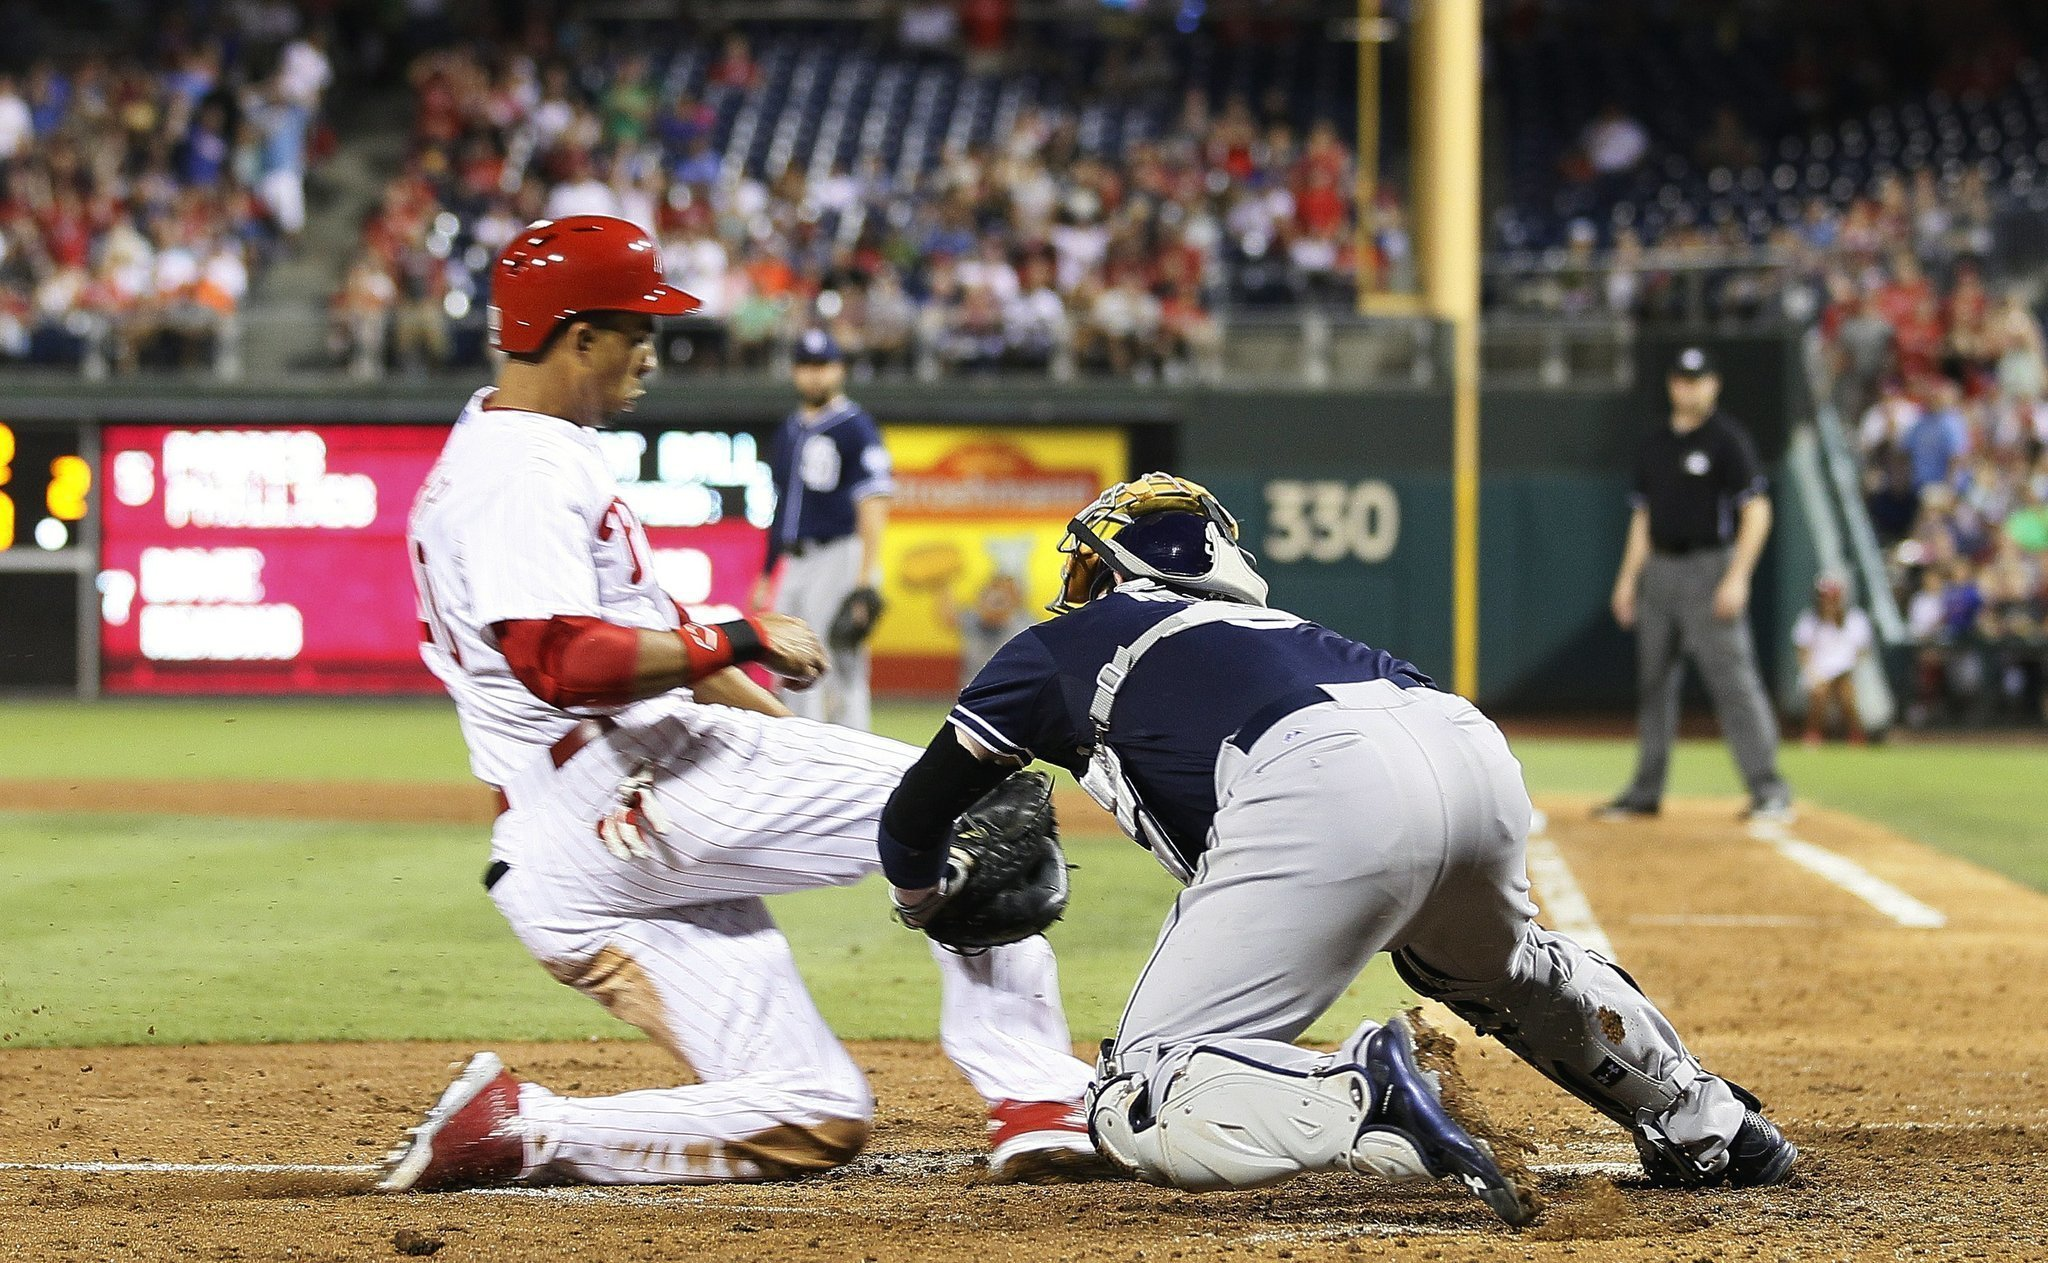 Padres catcher Derek Norris\' improvement behind plate is measurable ...